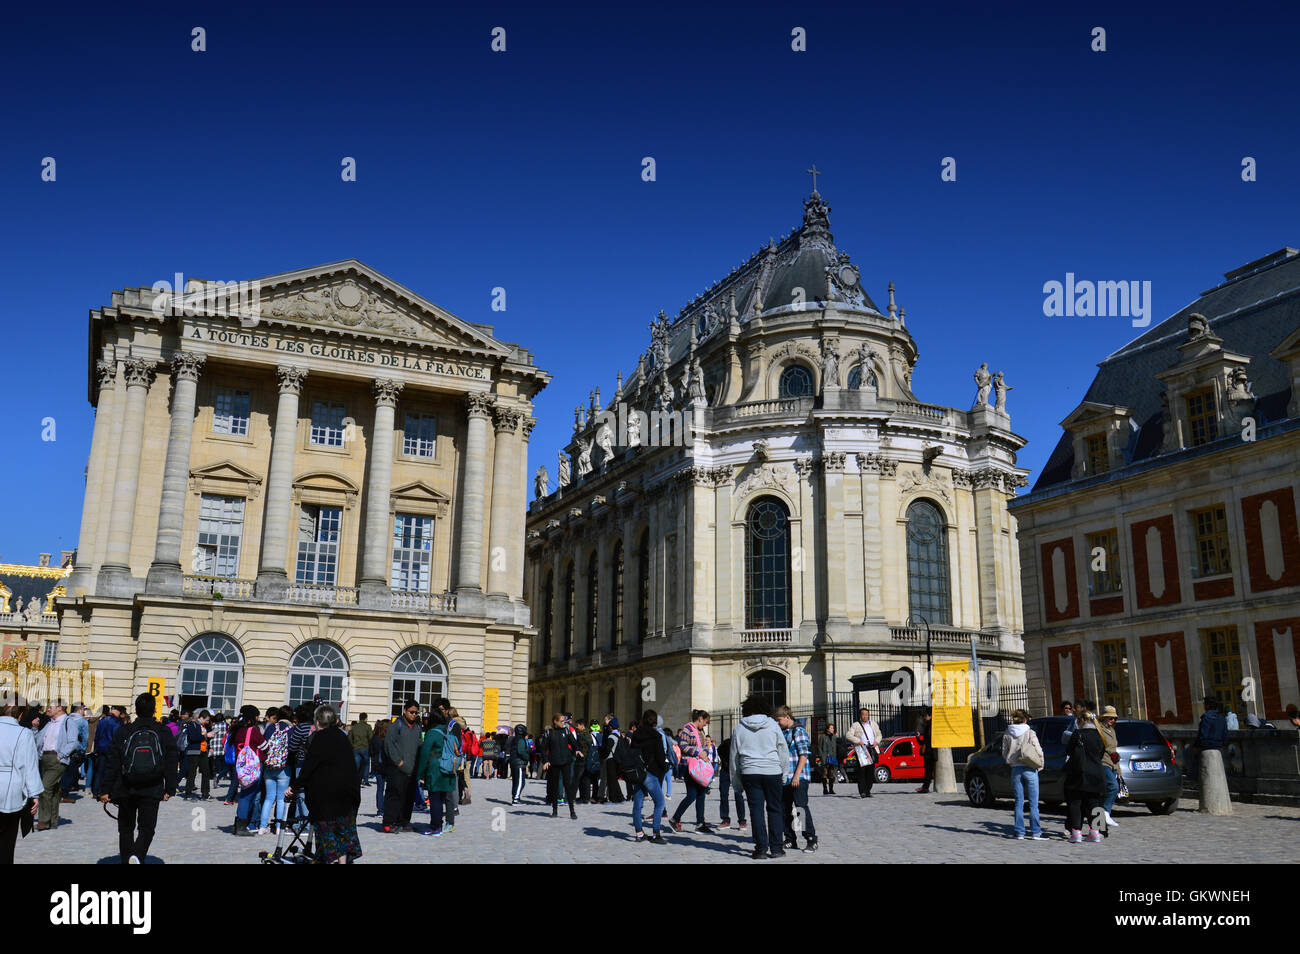 VERSAILLES, FRANCE - April 19, 2015: Tourists waiting to enter the Palace of Versailles, France - Stock Image